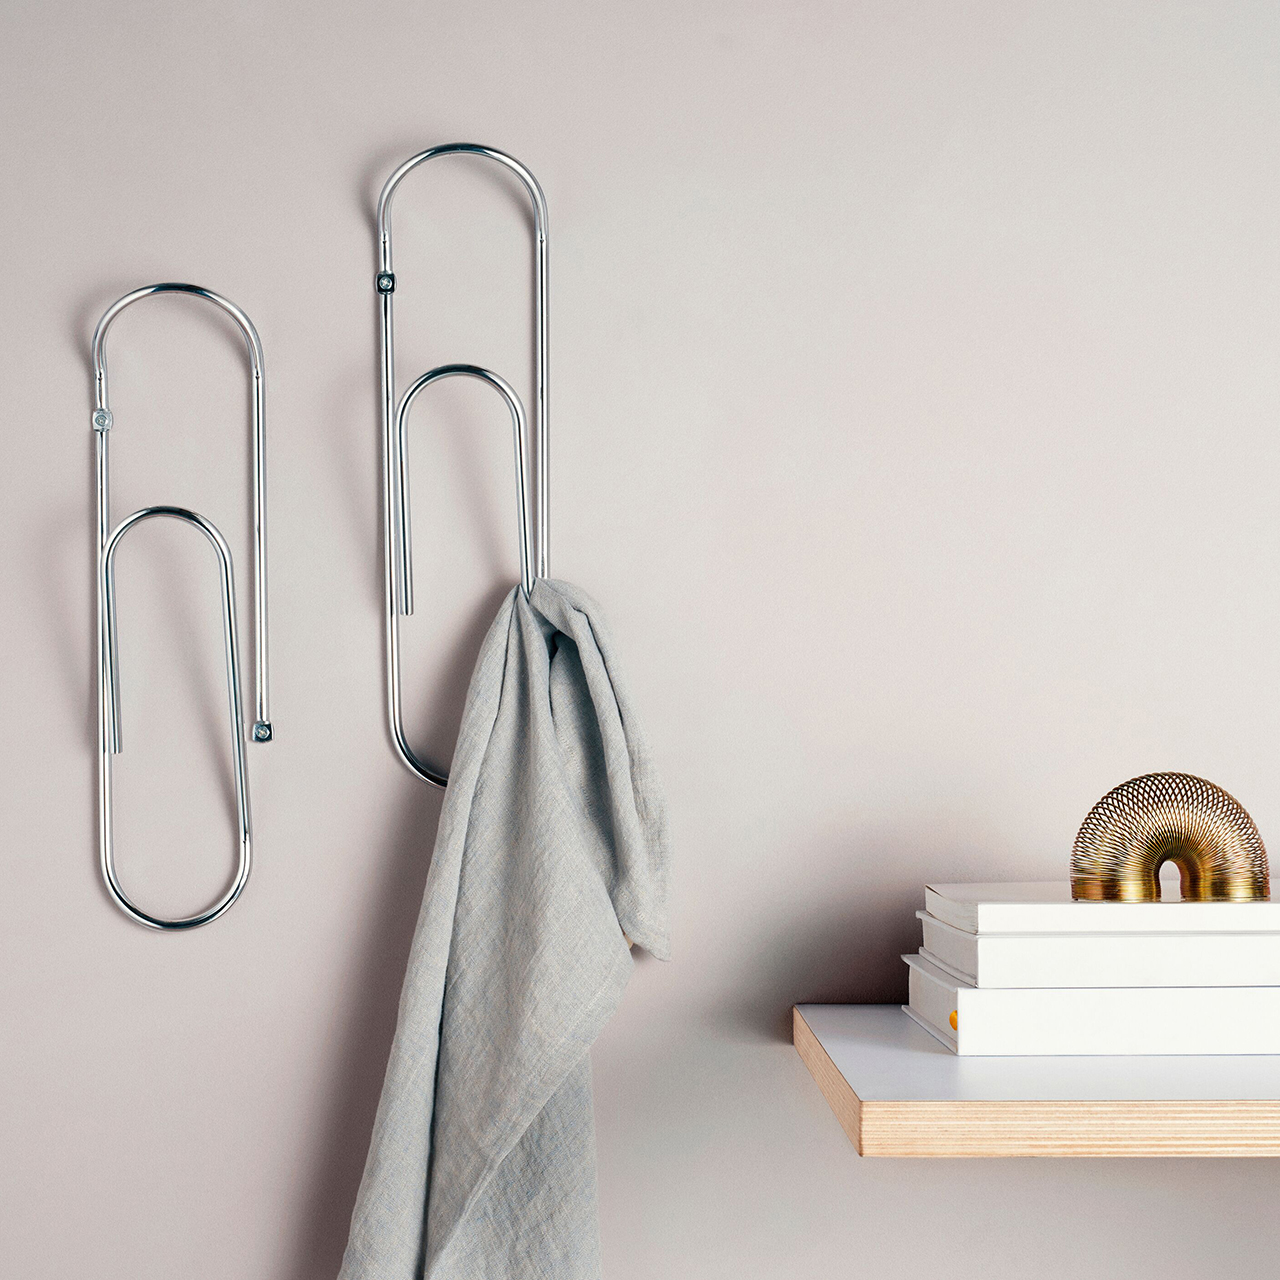 Minimalist design Bendo Luxe giant Paper Clip wall mounted coat hooks chrome | The Design Gift Shop